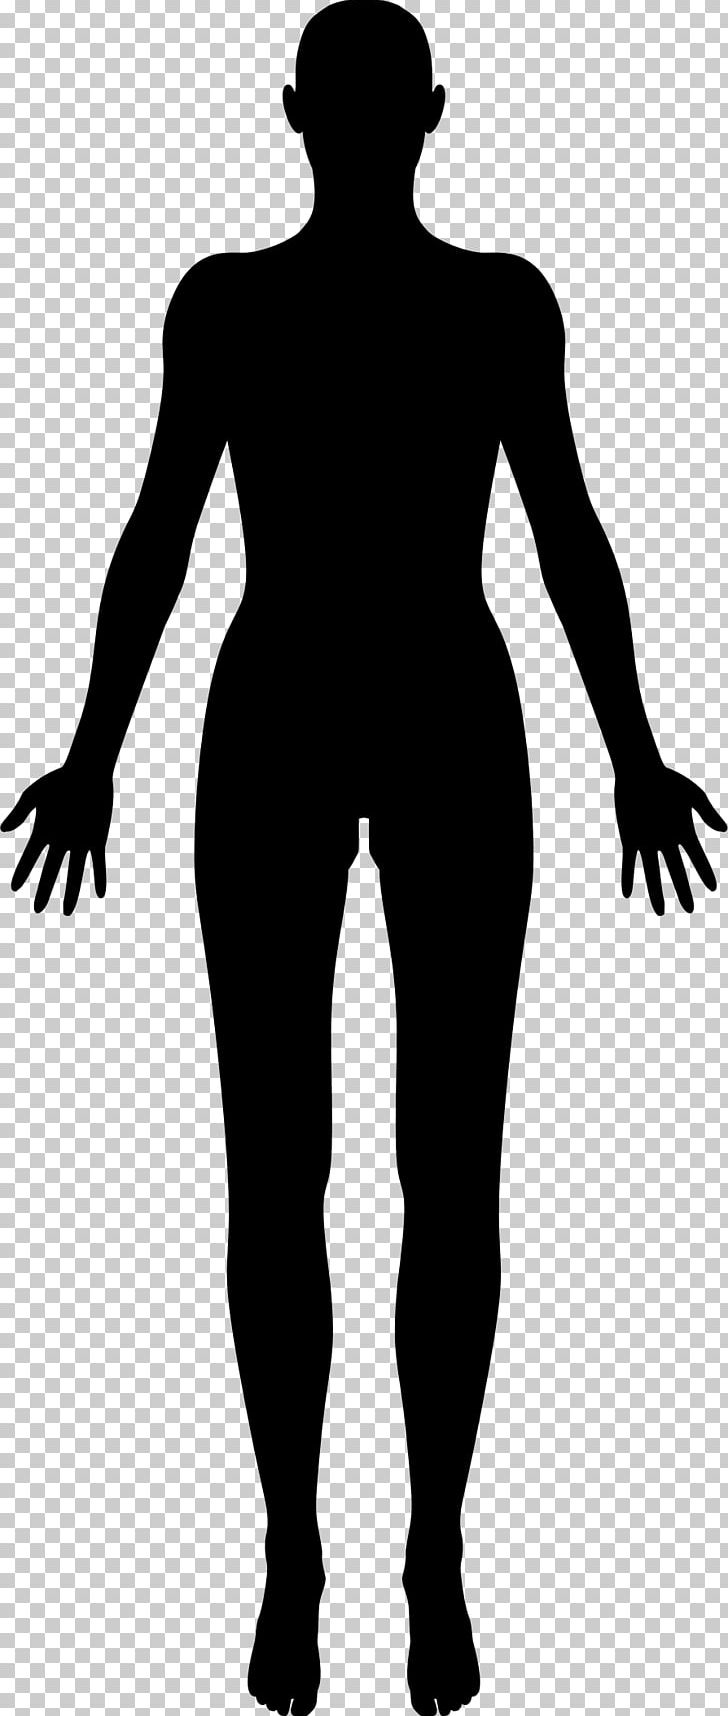 Body shape. Female human silhouette png